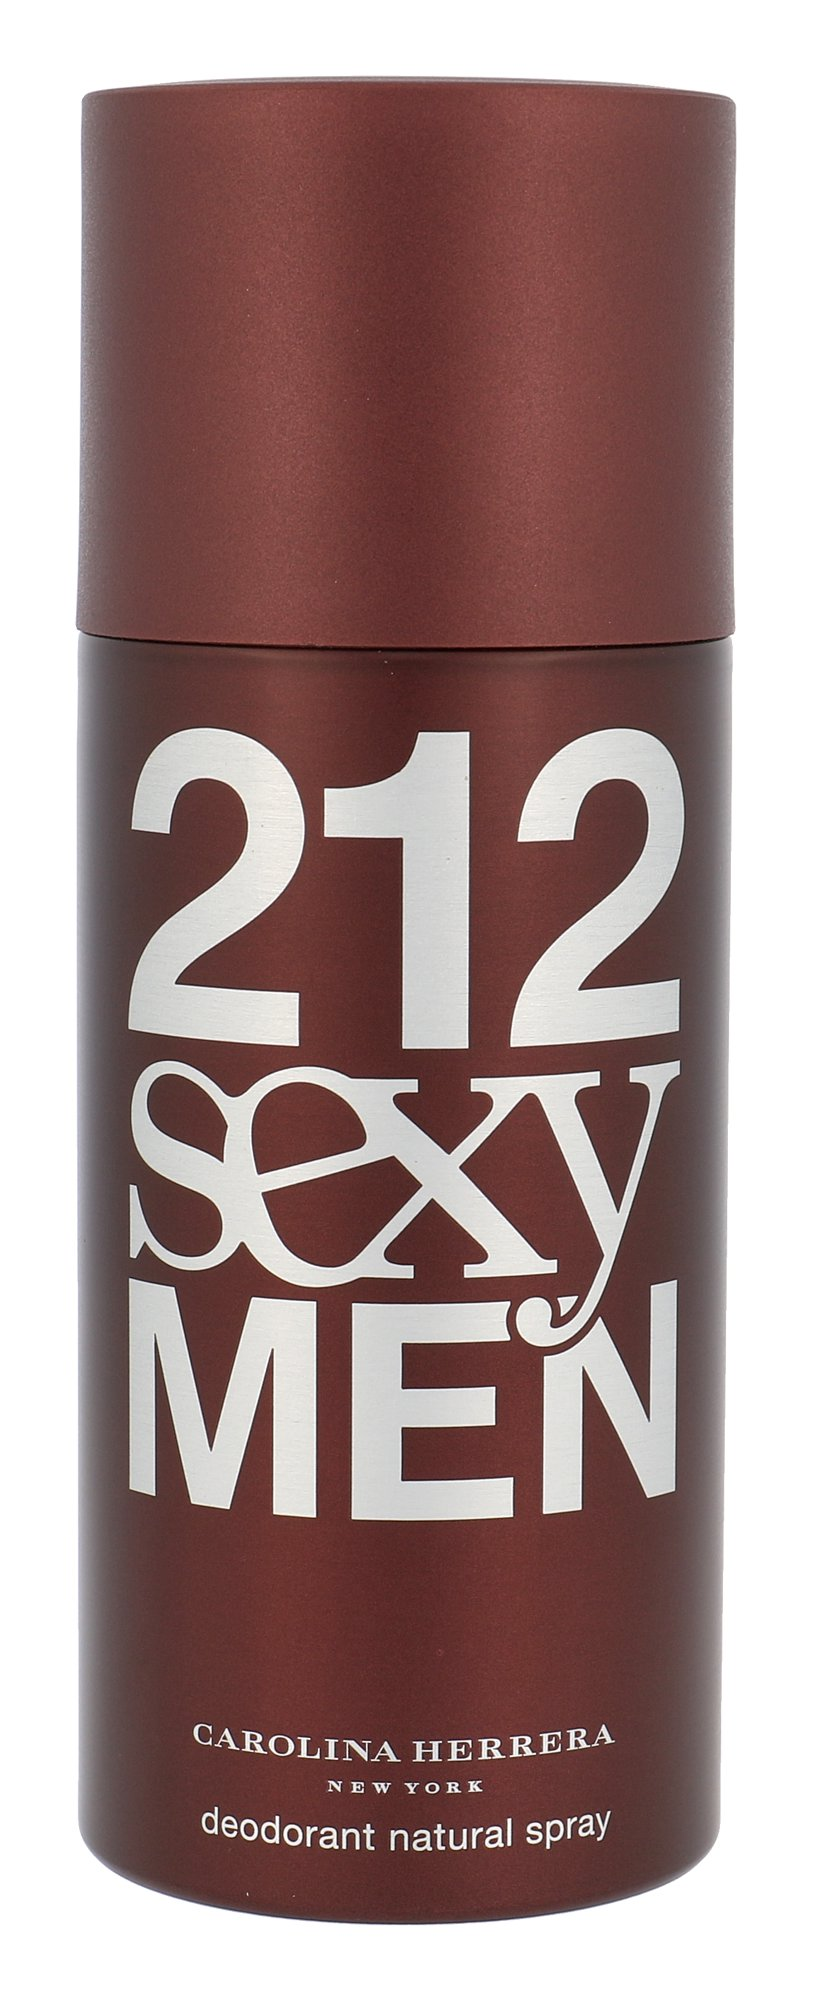 Carolina Herrera 212 Sexy Men, Deodorant 150ml